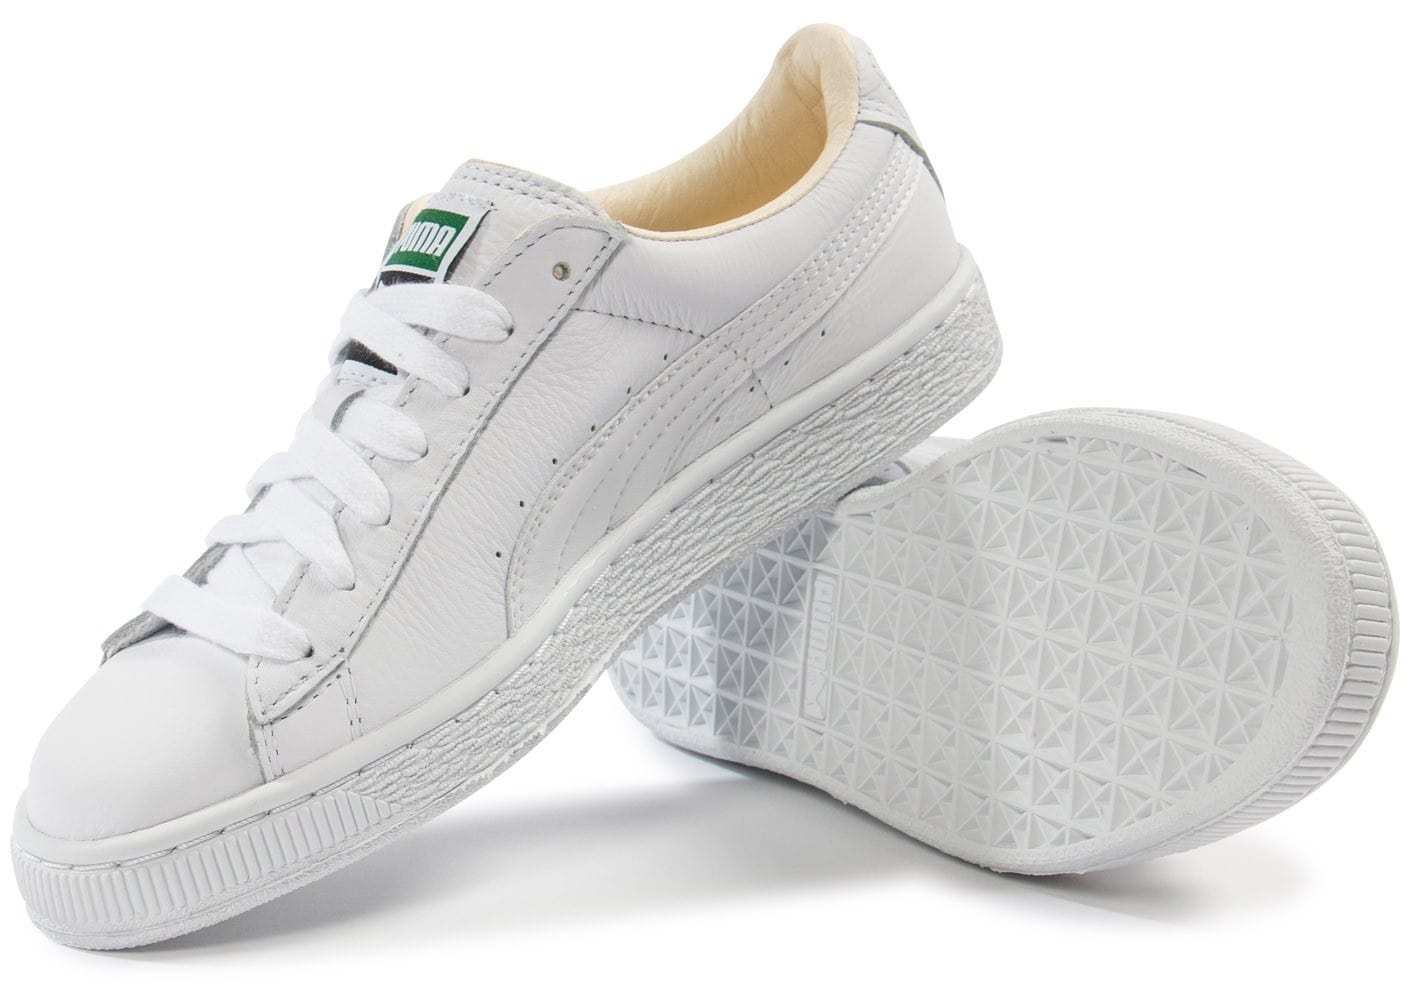 puma basket classic cuir blanche chaussures 50 sur le 2e article chausport. Black Bedroom Furniture Sets. Home Design Ideas